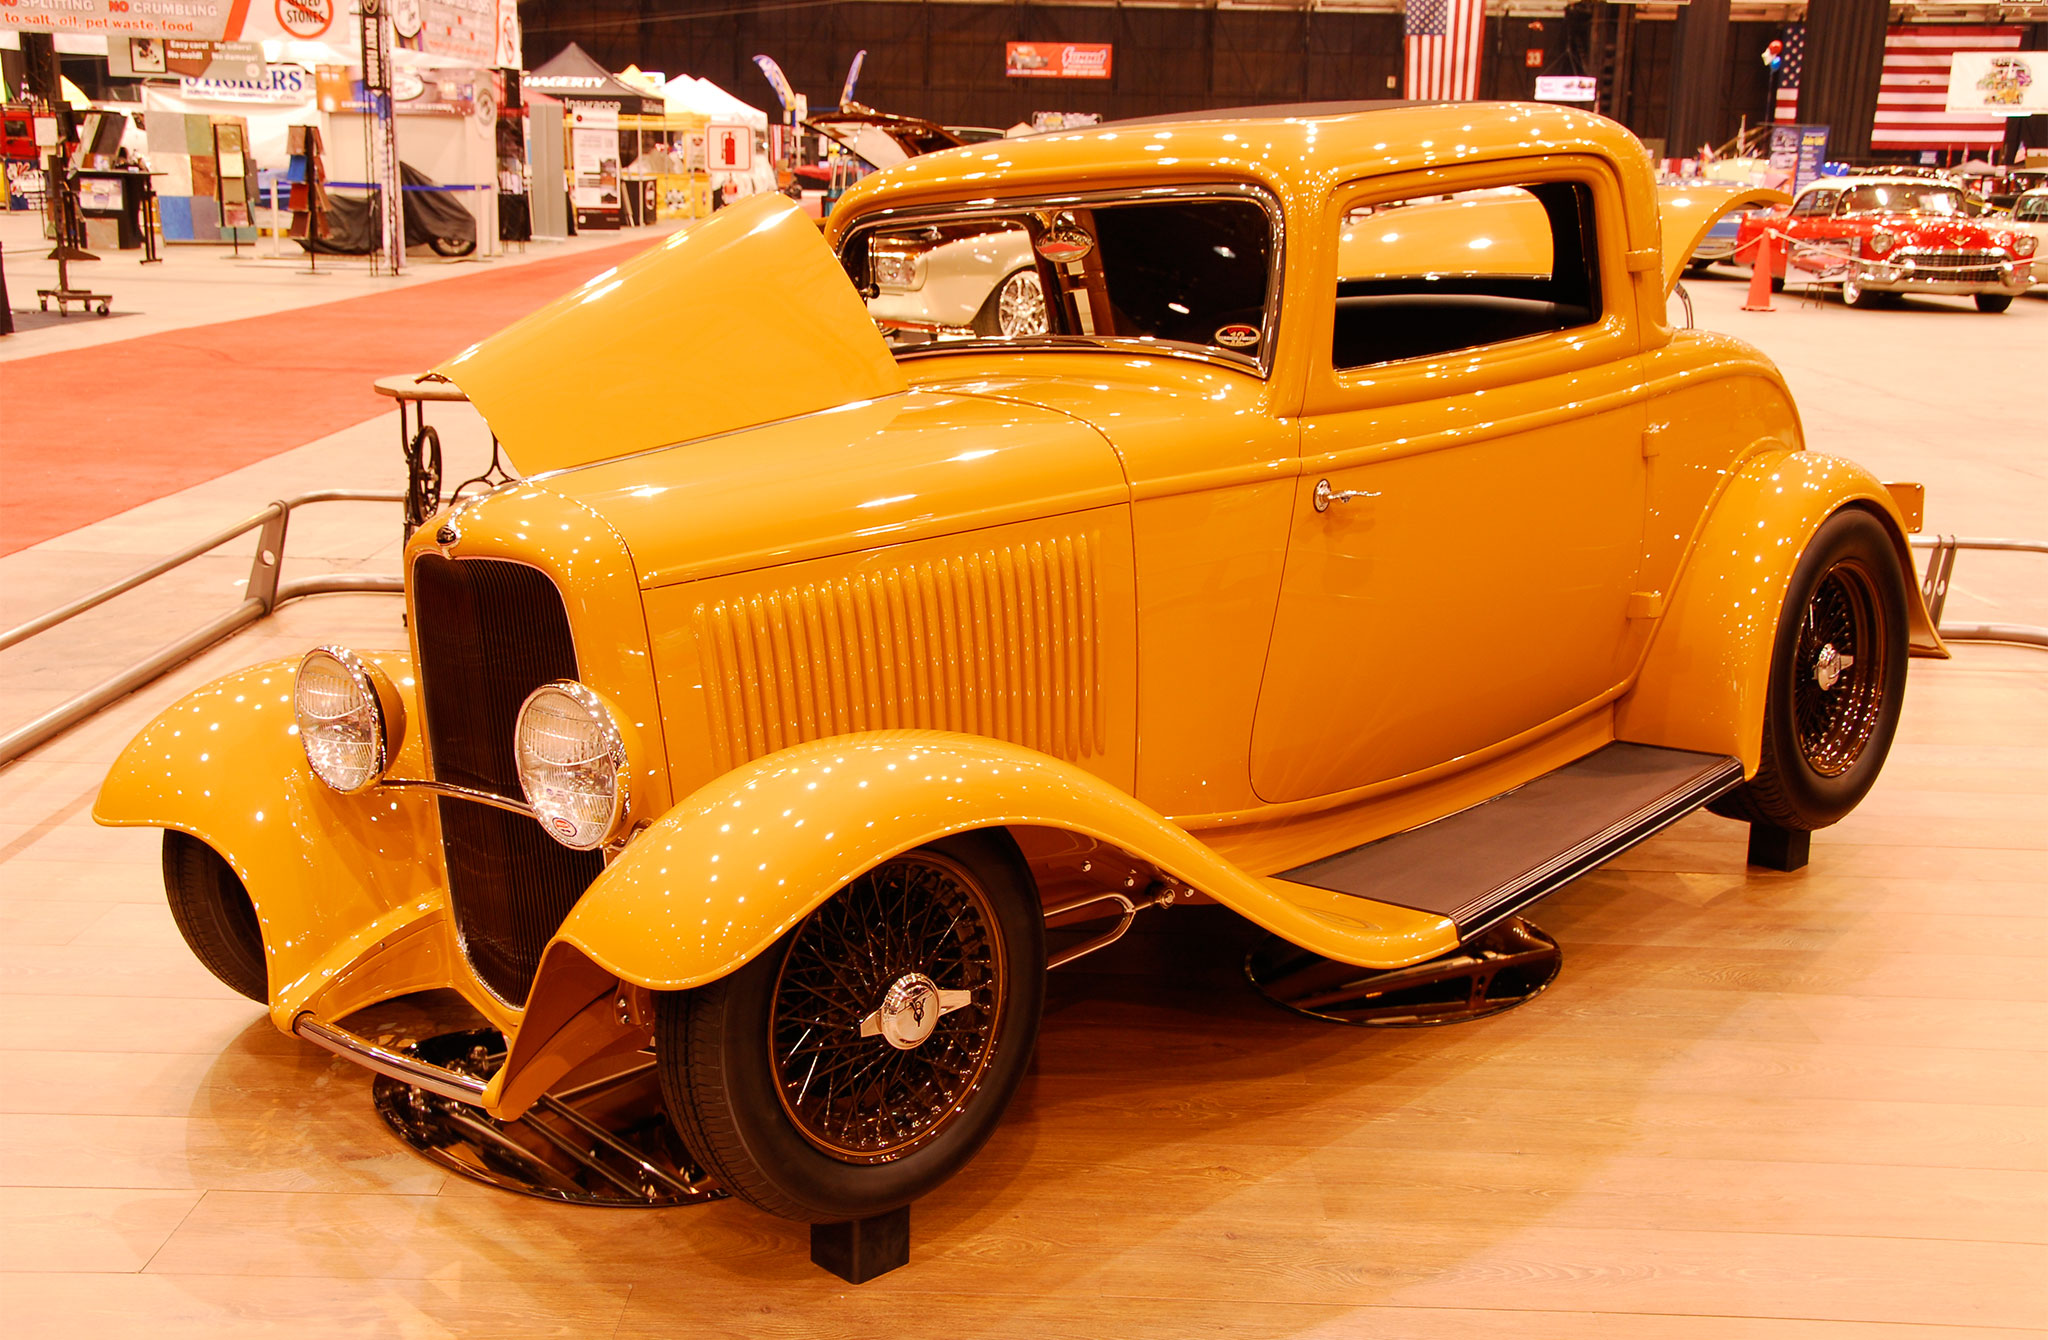 Built by Dave Lane for Phil and Deb Becker, their 1932 Ford was as nice as they come, featuring an original body with a 3/4-inch chop, detailed 350ci Chevy small-block, Winters quick-change rear, and custom blended DuPont Butterscotch gloss.